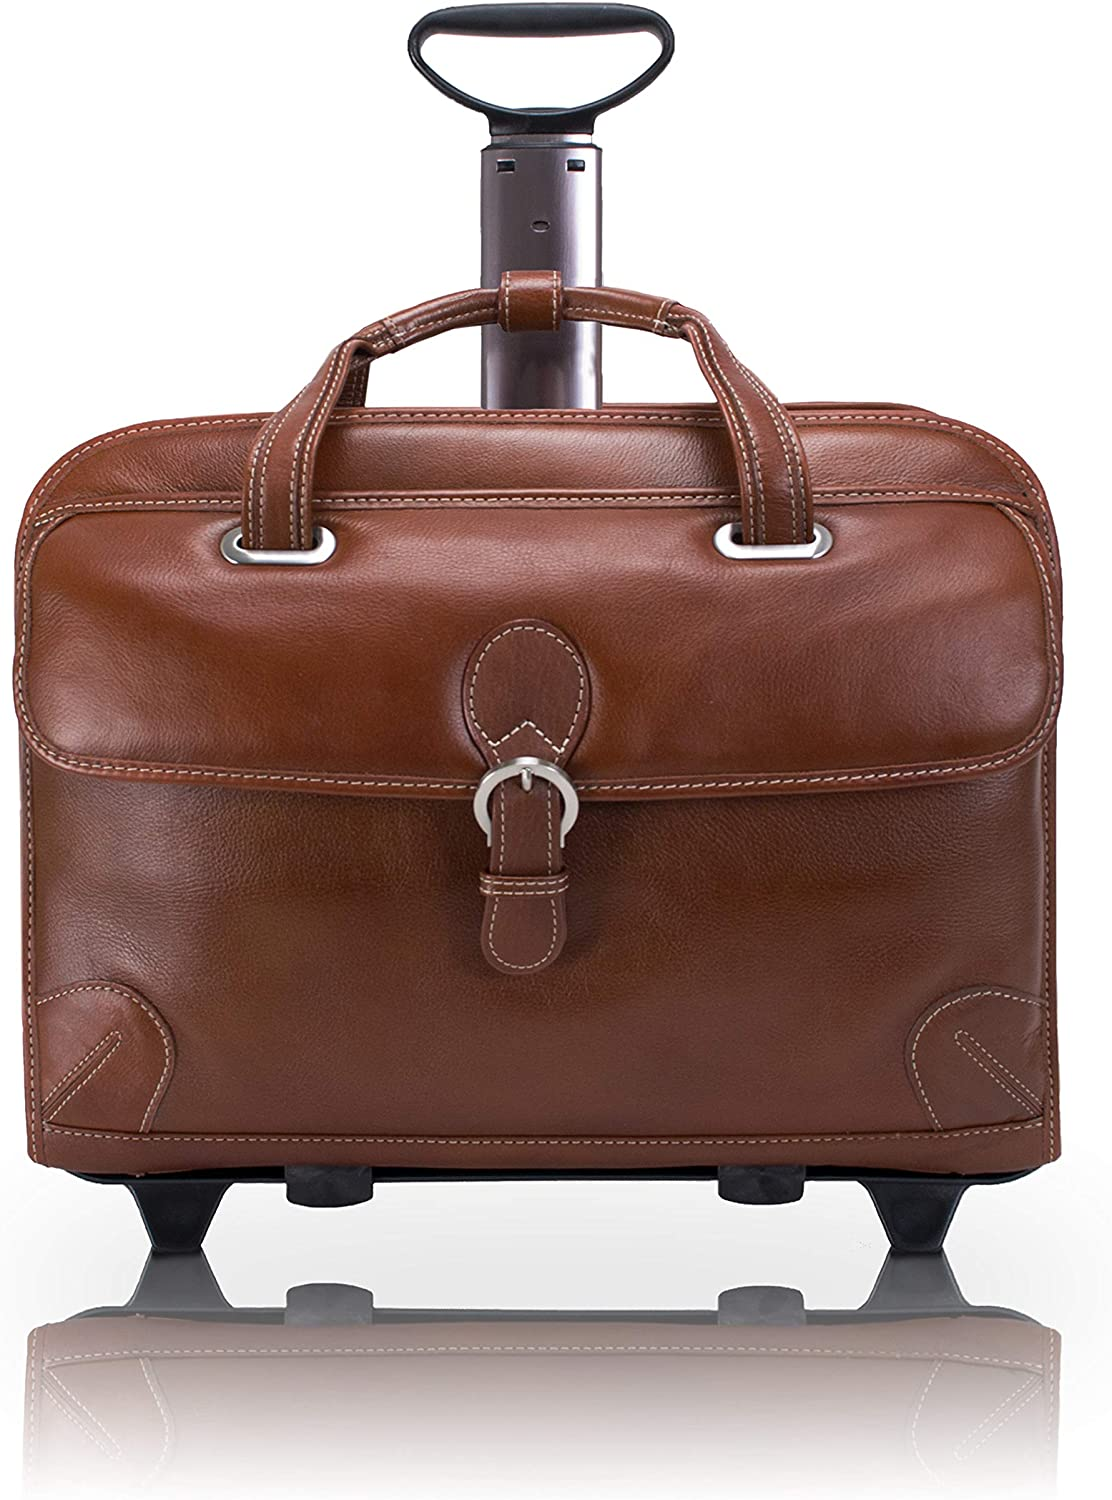 """McKlein USA Carugetto 15.4"""" Leather Wheeled Laptop Briefcase"""